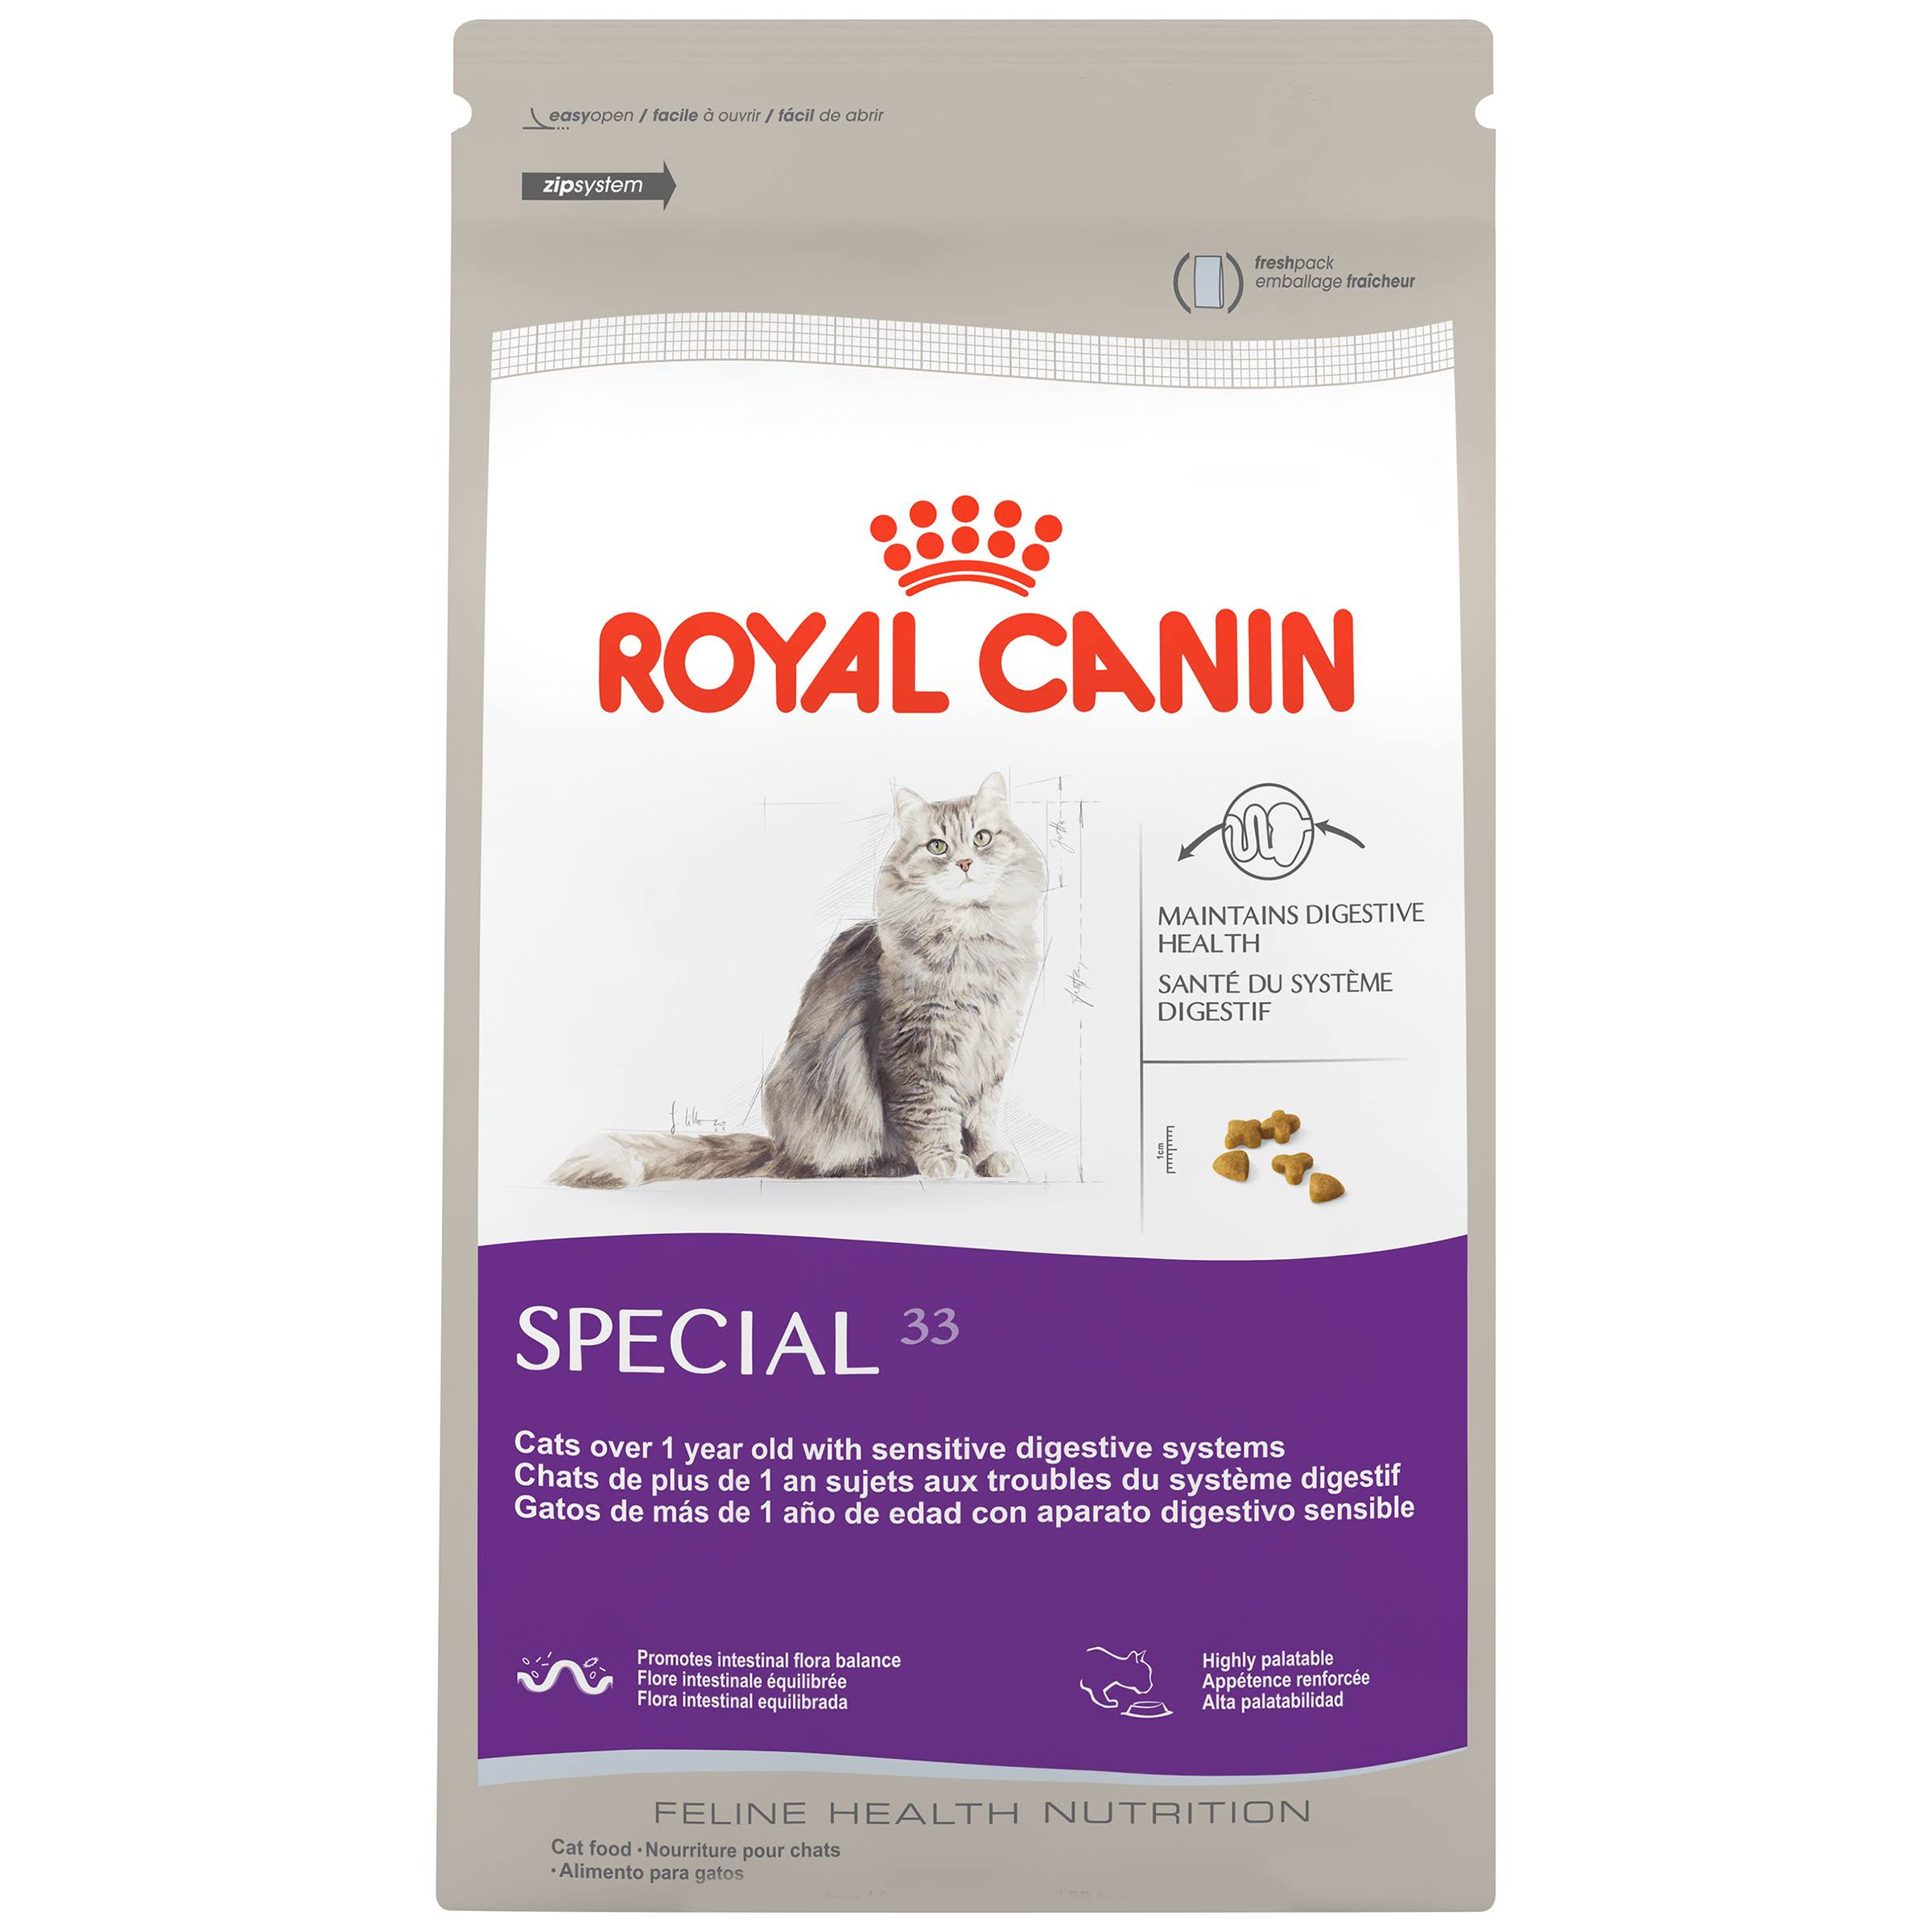 Royal Canin Feline Health Nutrition Special 33 Dry Cat Food - 3.5lbs